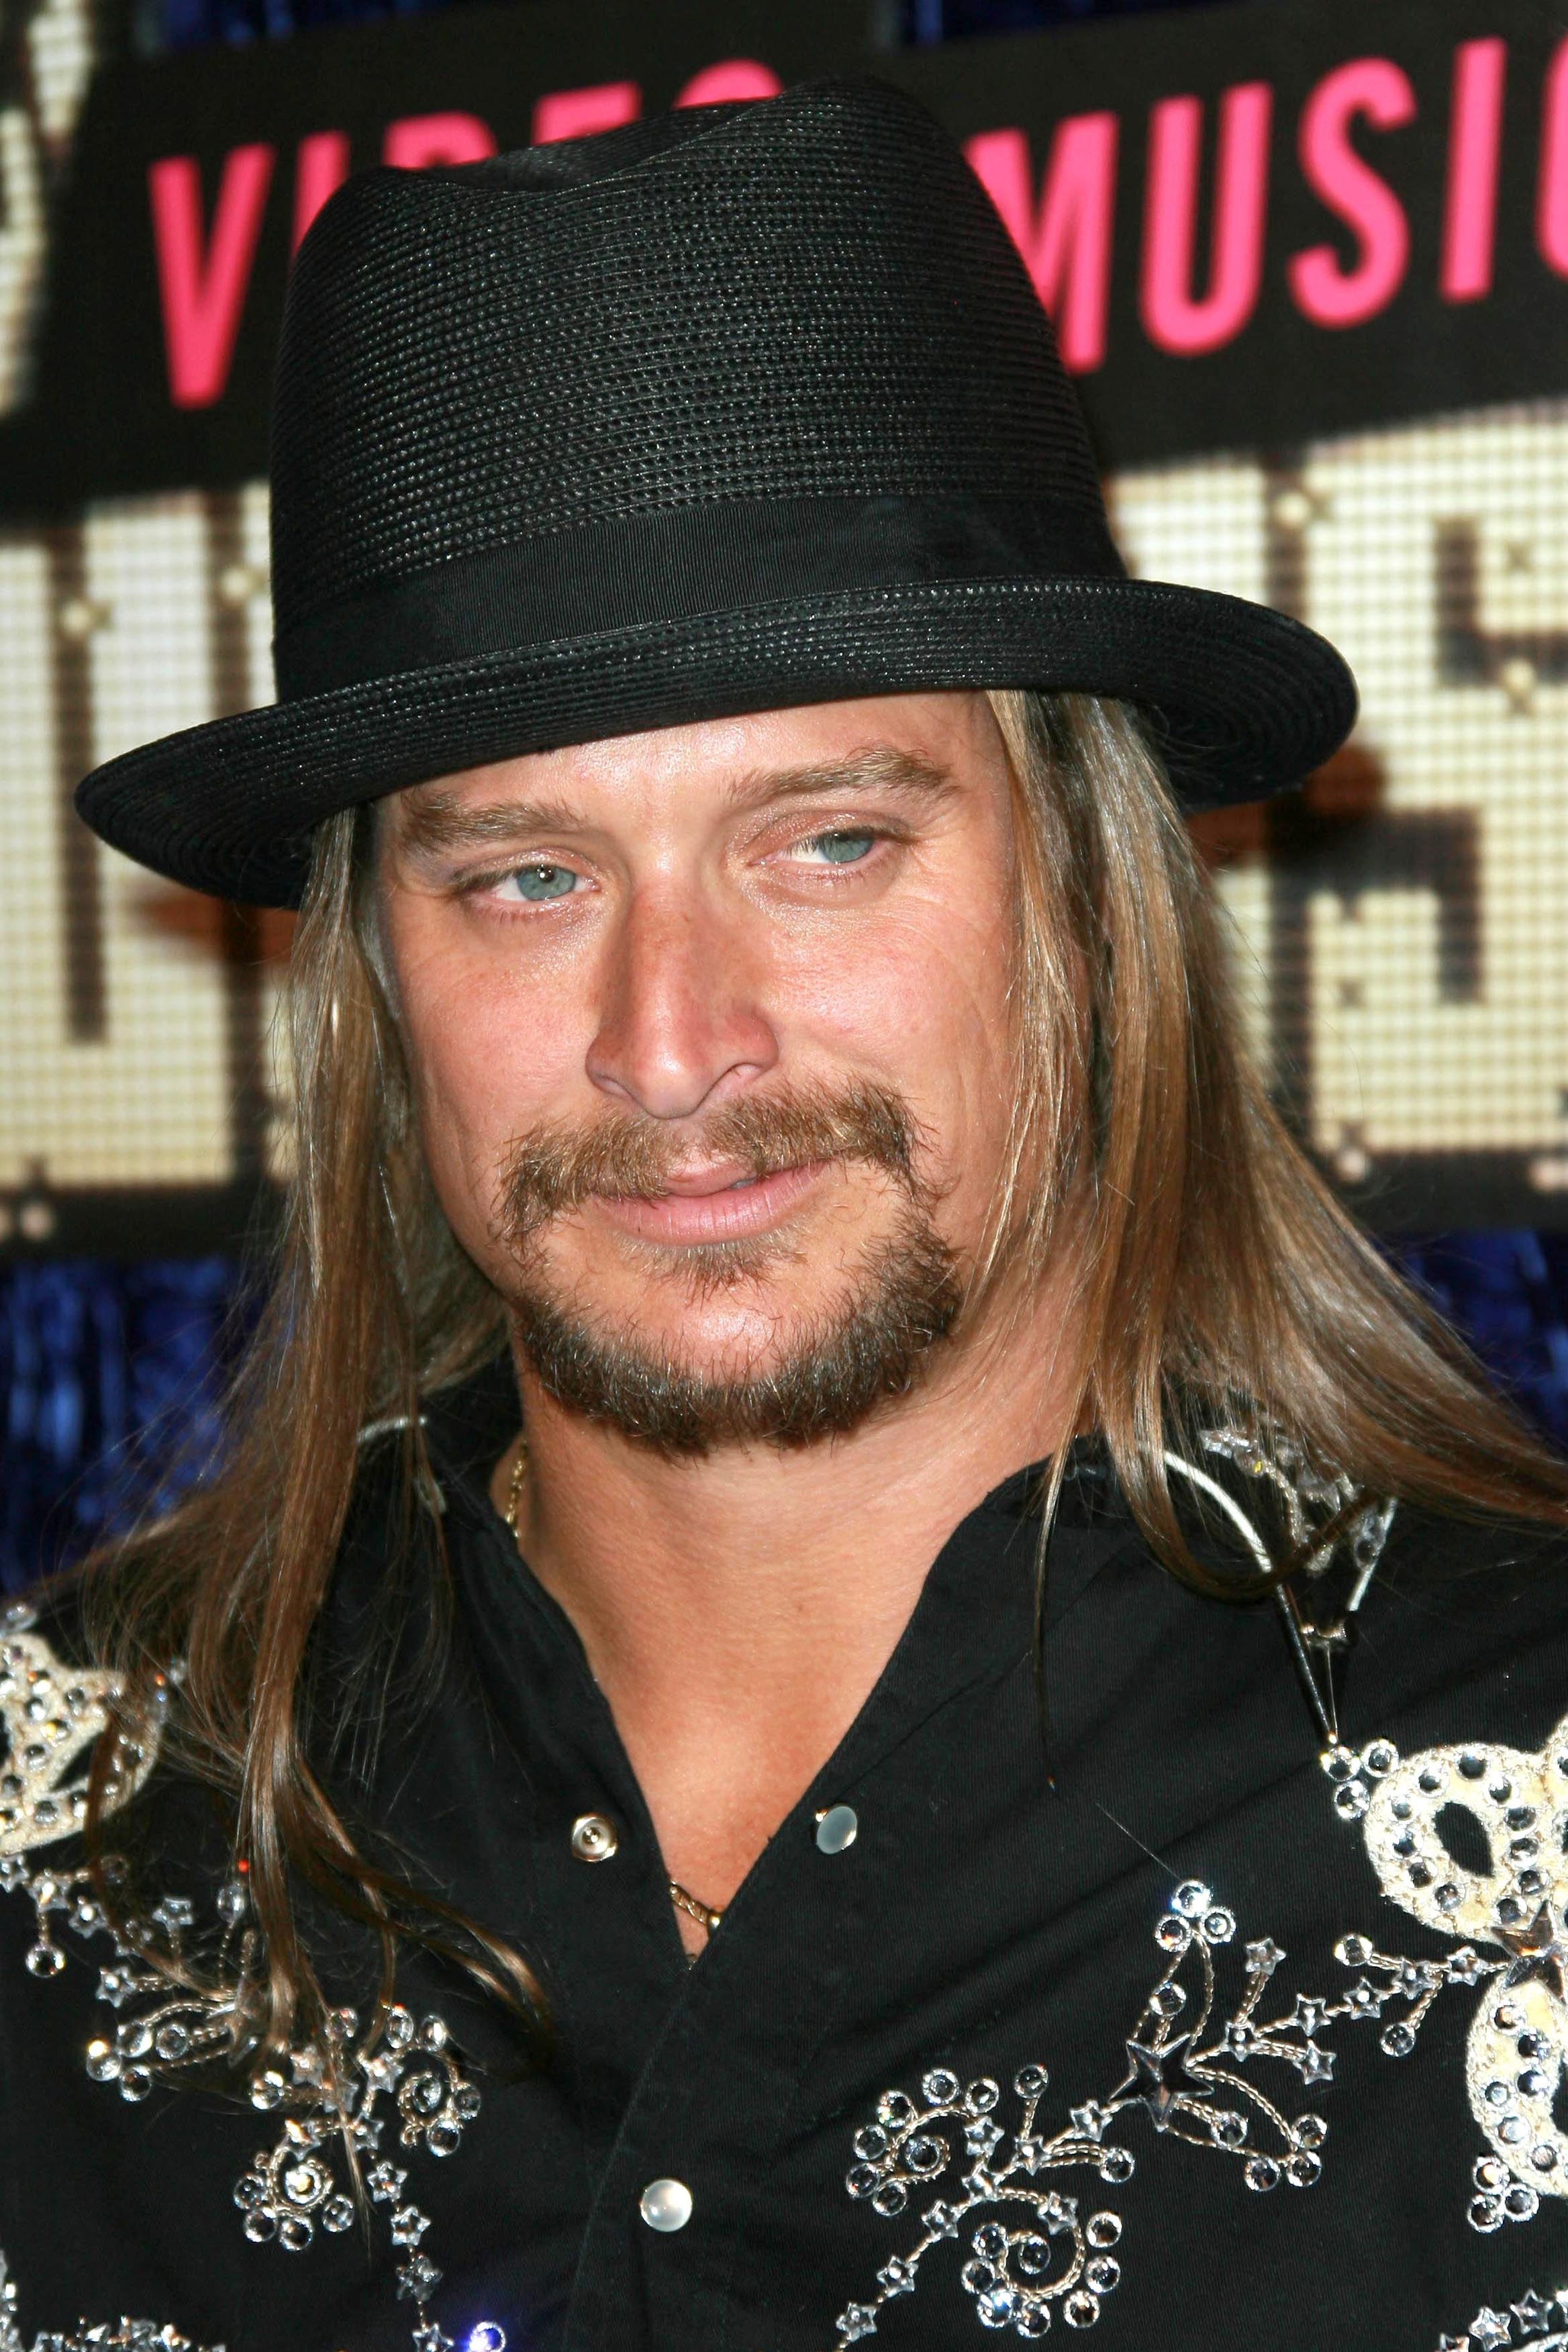 Kid Rock - Angel of the Lord